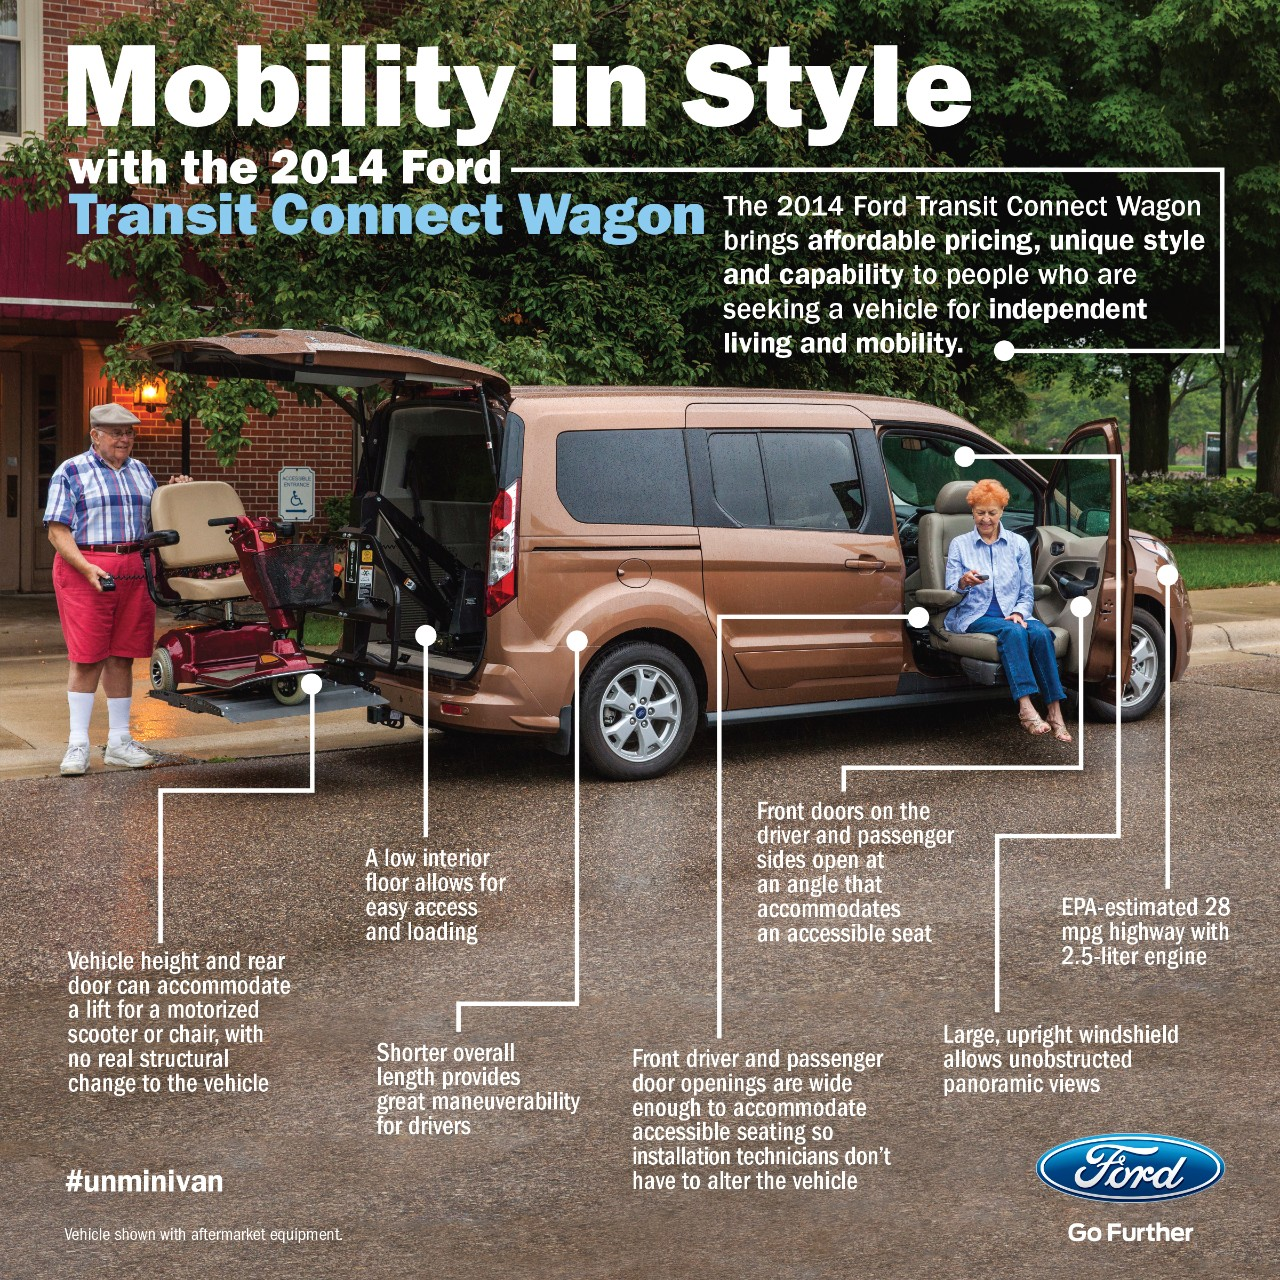 Ford Transit Connect Popular With Customers With Limited Mobility